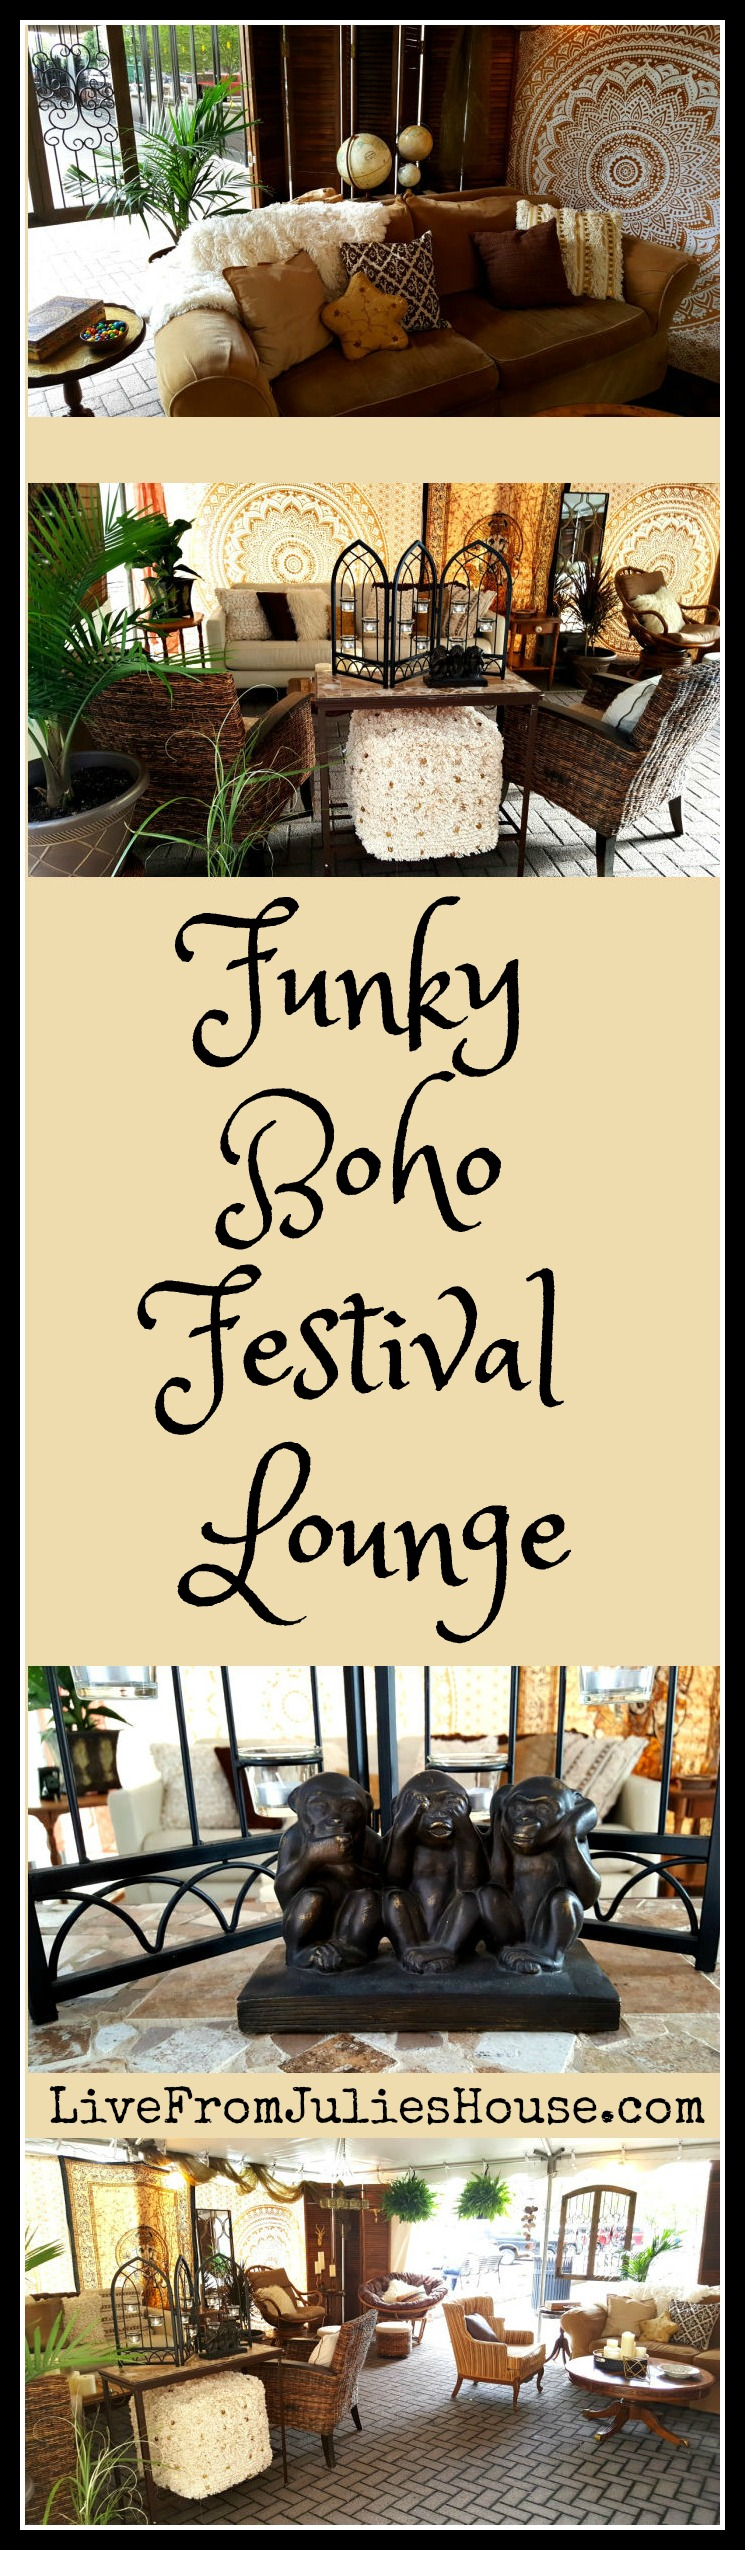 Fun & Funky Boho Festival Lounge - I recently created a fun & funky boho lounge for a festival I am involved with. The best part is - I made it all happen with a $500 budget!